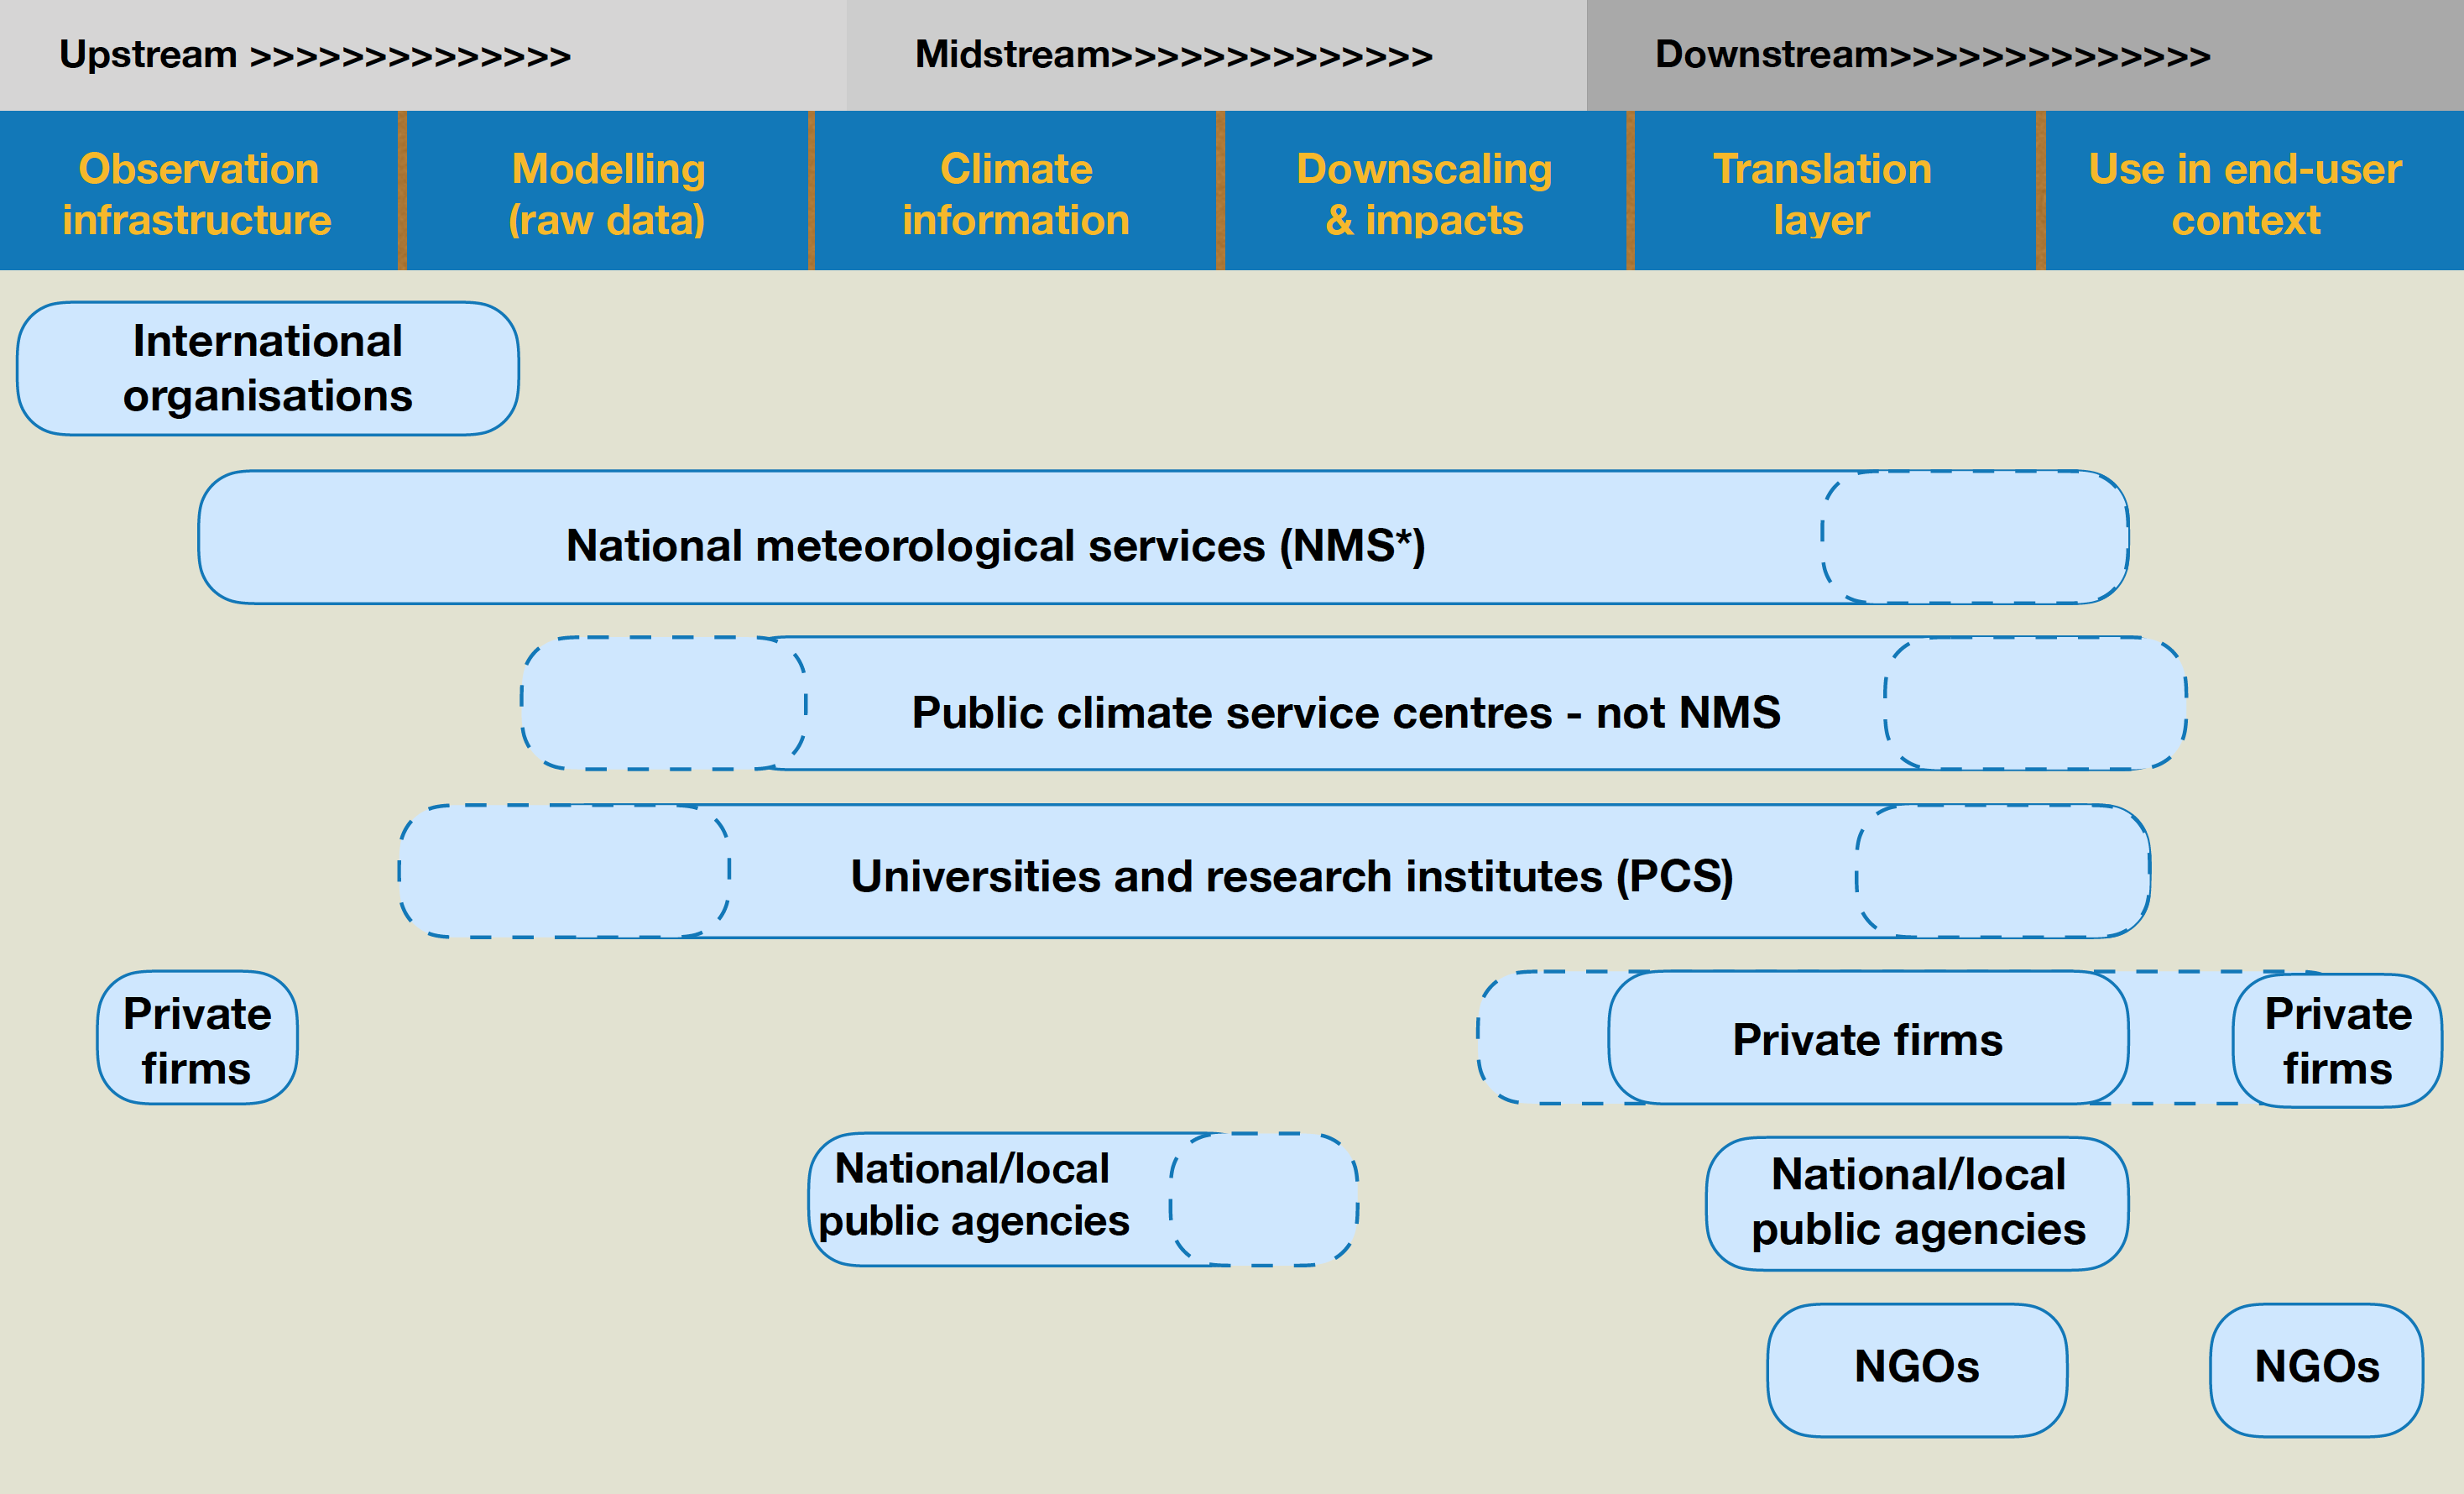 Figure 2. Segments in the value chain of climate services